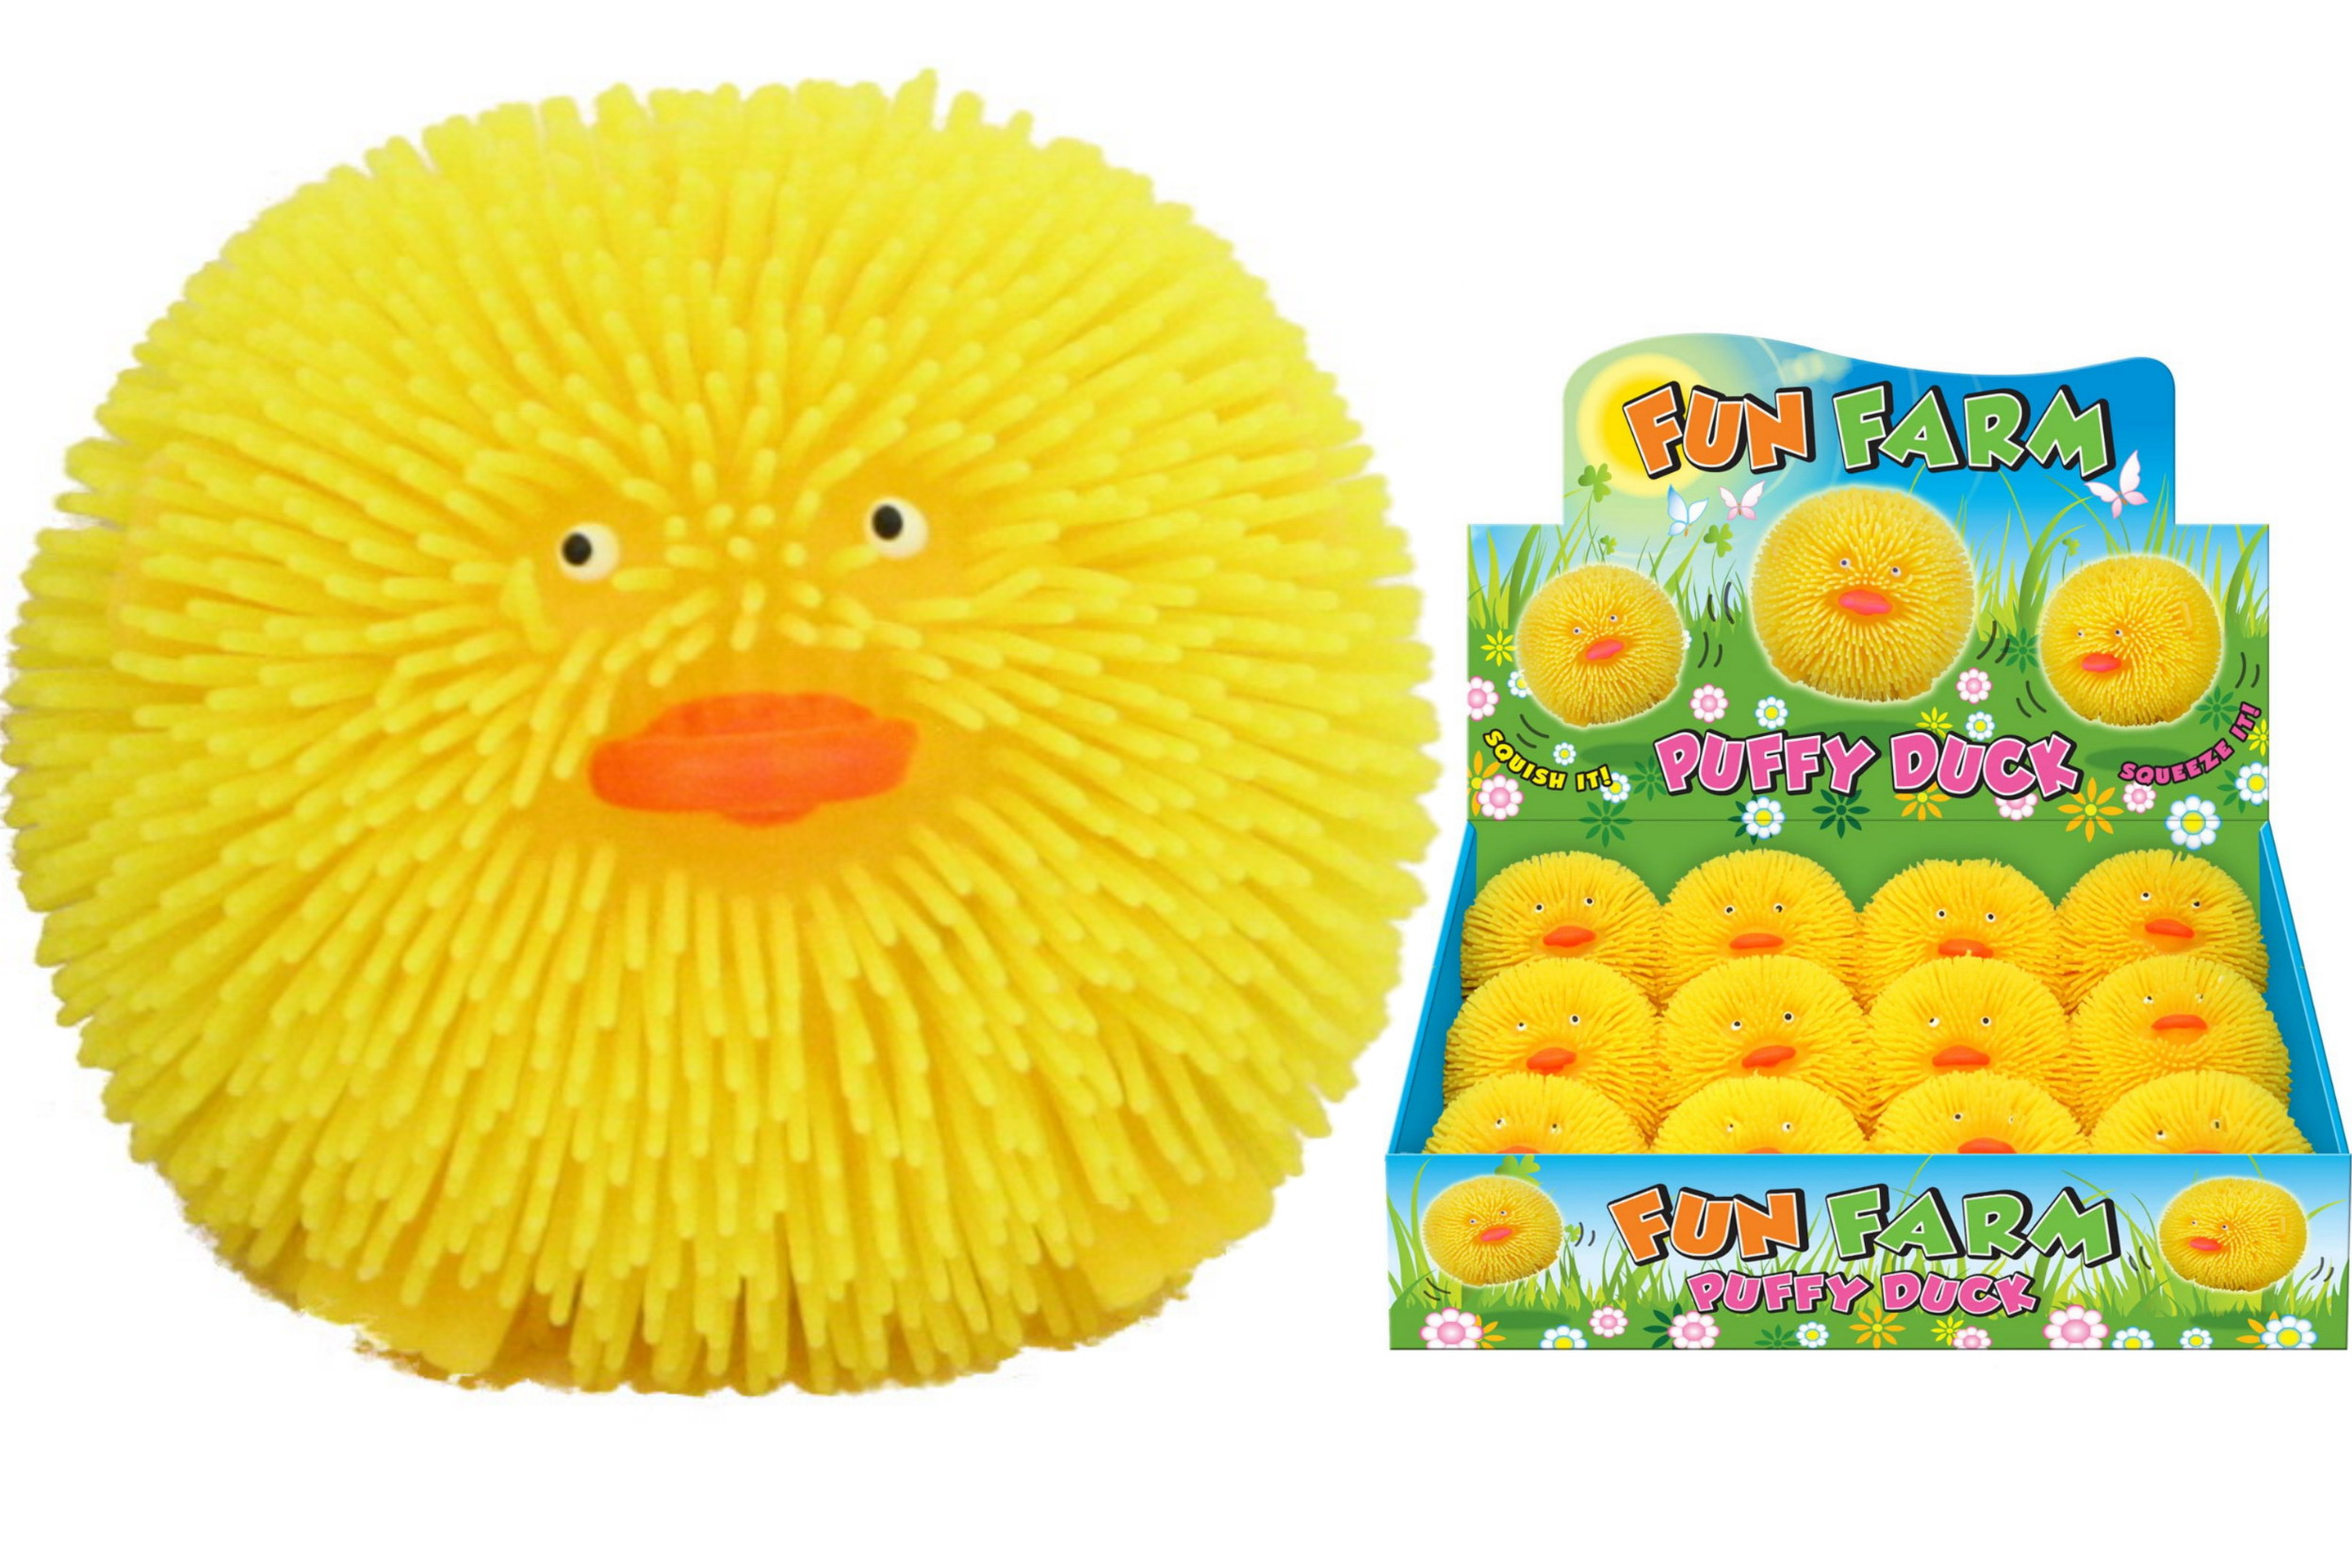 Puffy Duck In Display Box